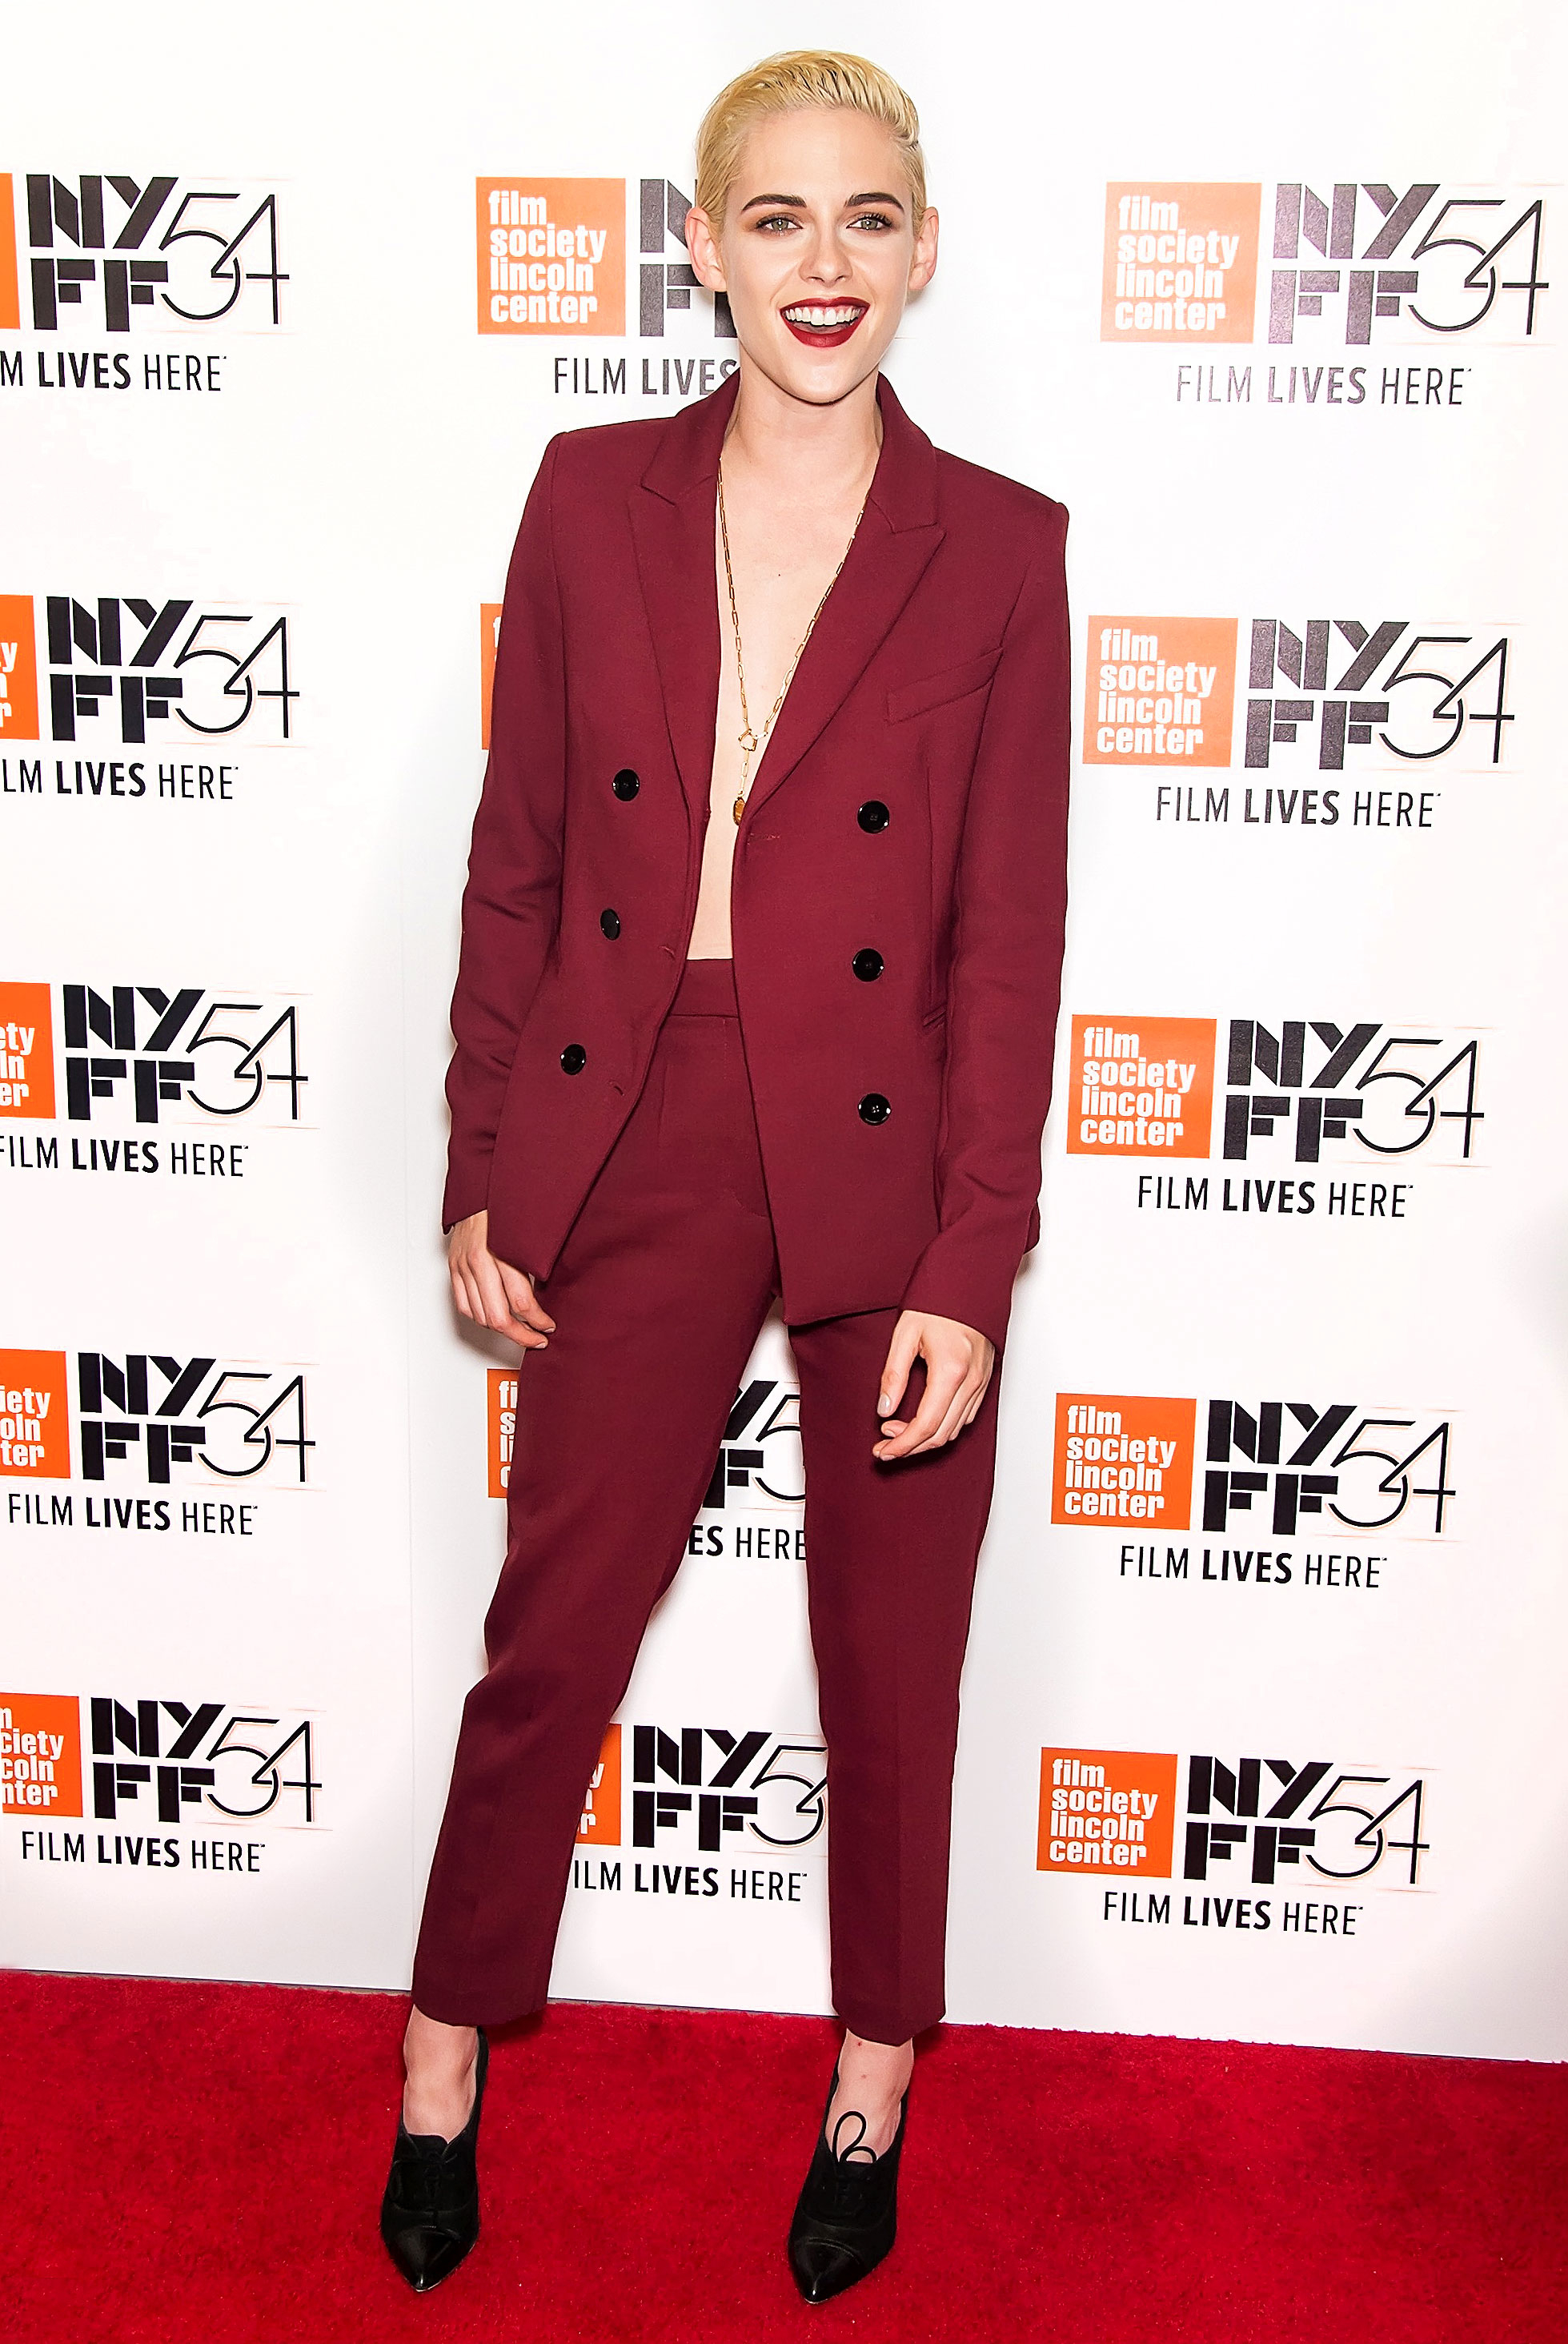 Kristen Goes Under Her Burgundy Suit At The Red Carpet Premiere Of Certain Women In Nyc Monday Oct 3 2016